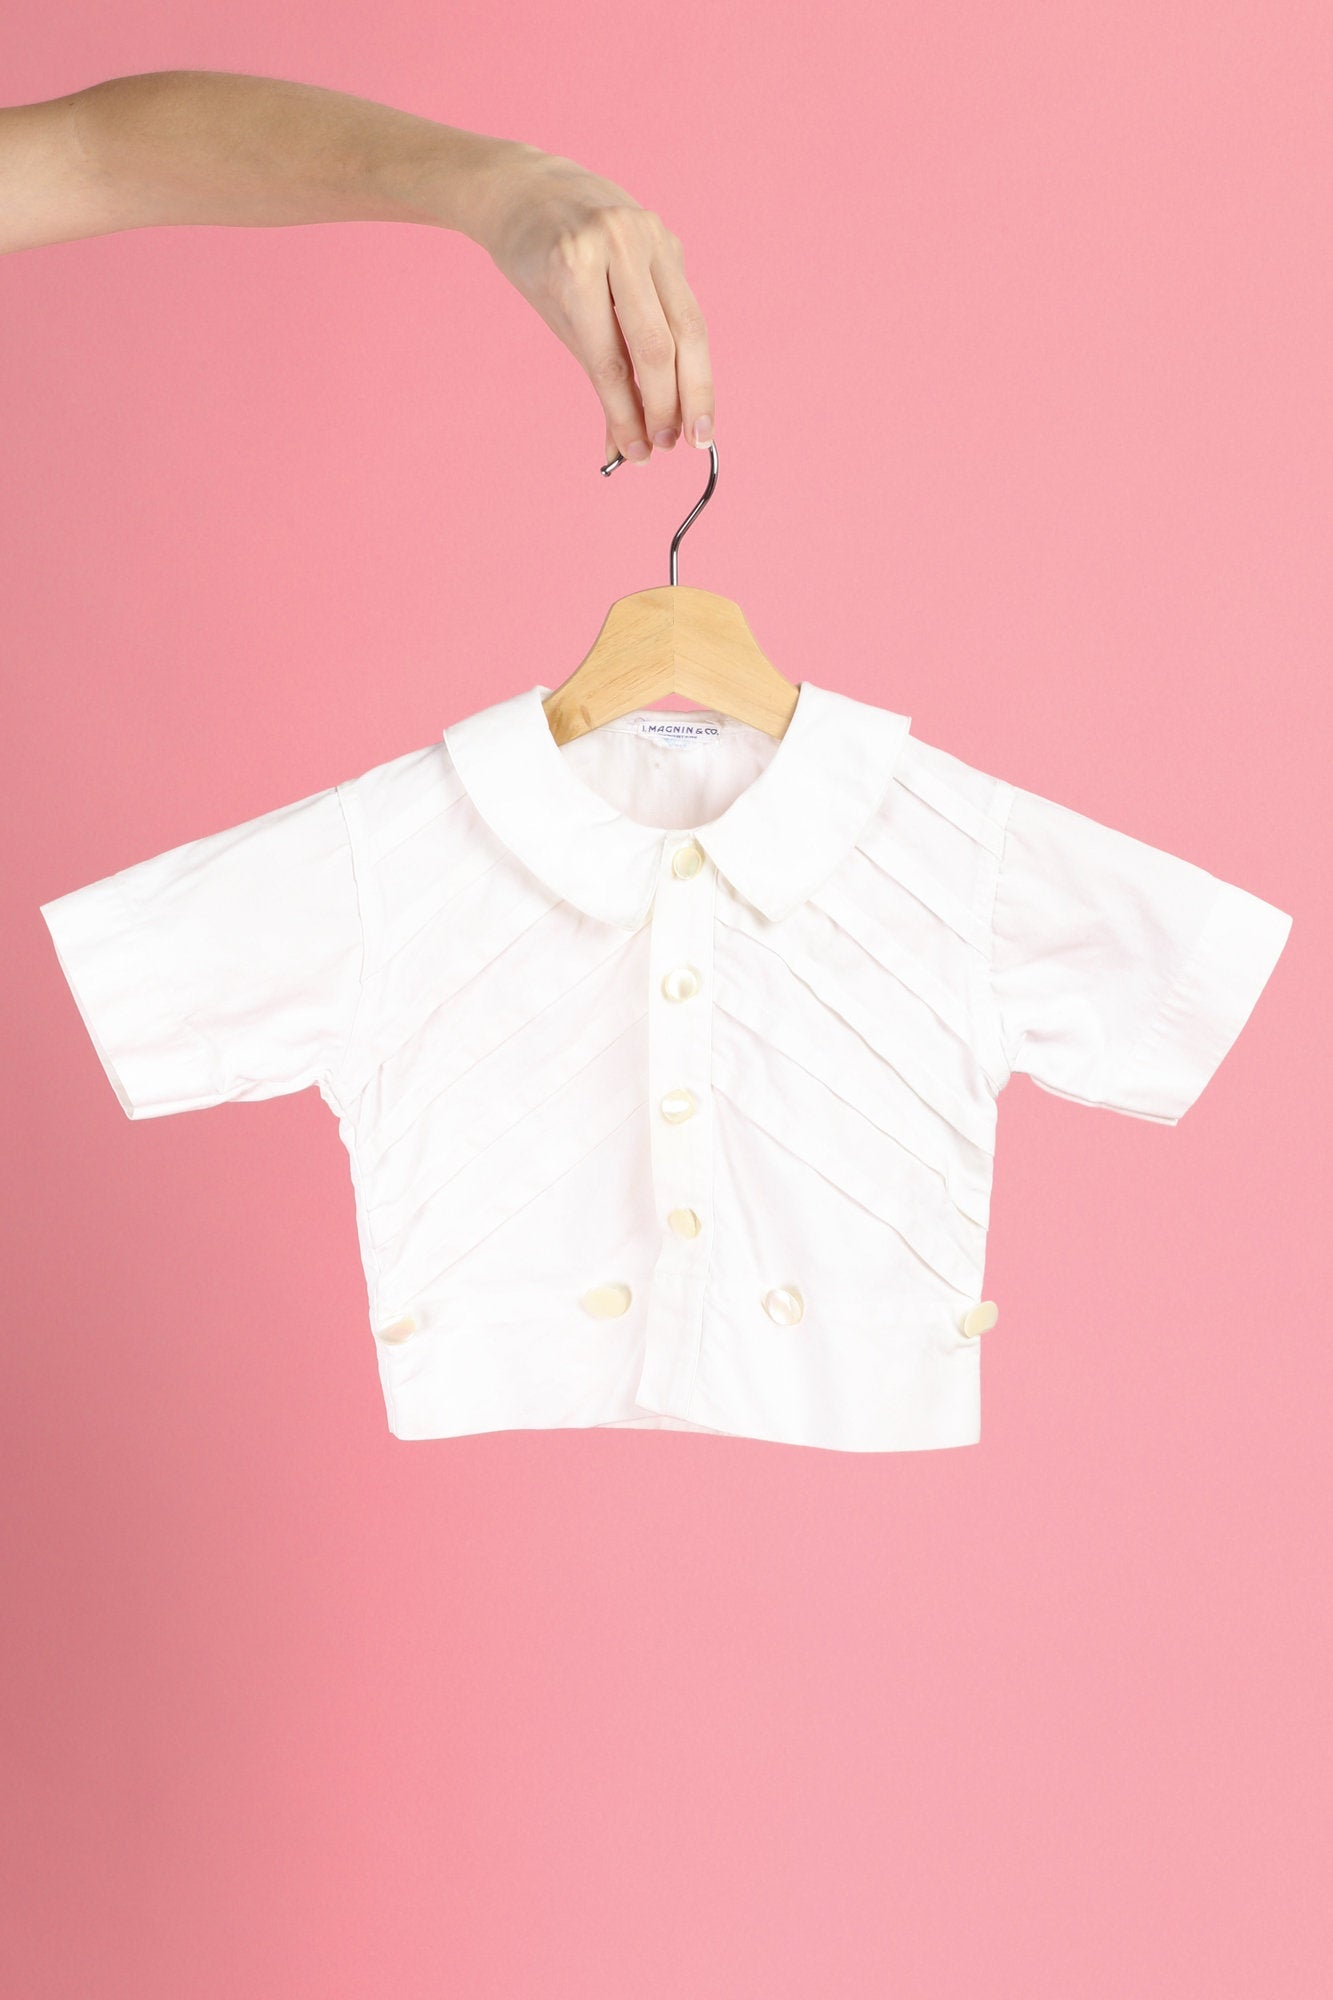 60s I. Magnin Toddler Top - 4T